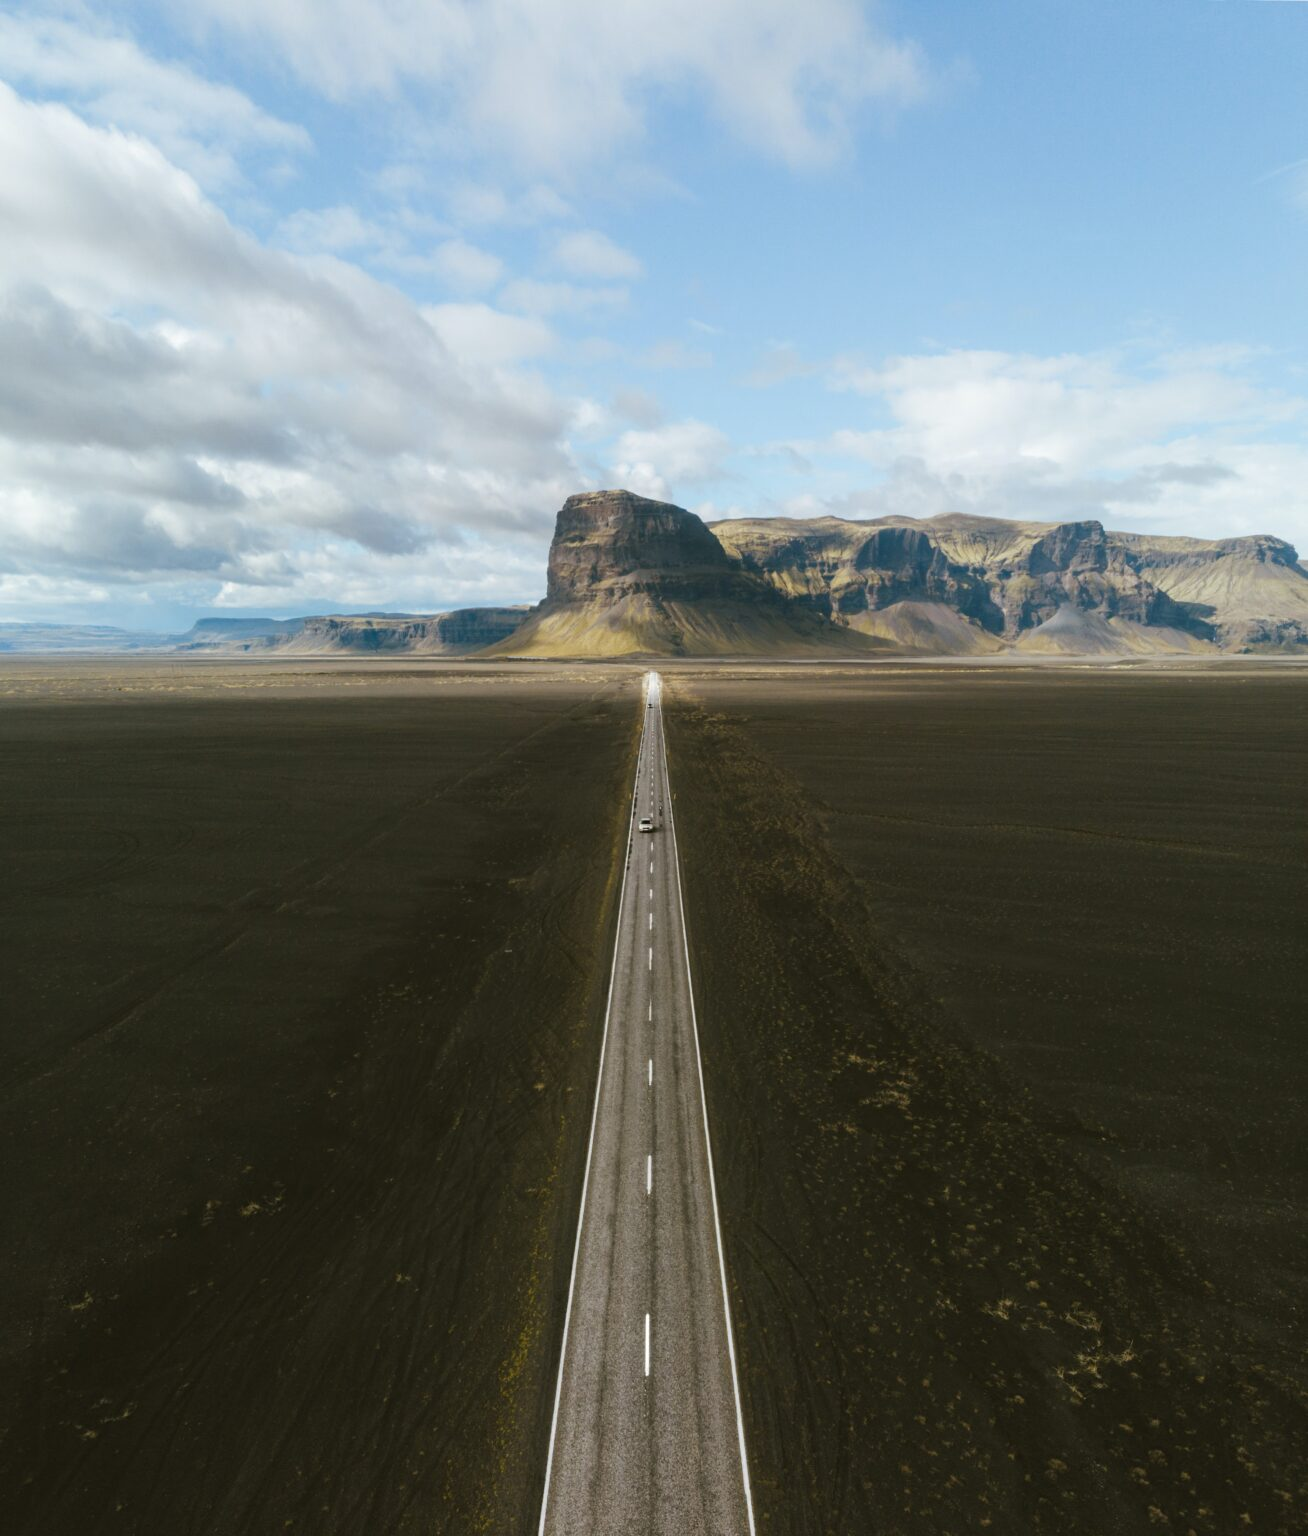 long road way with mountains